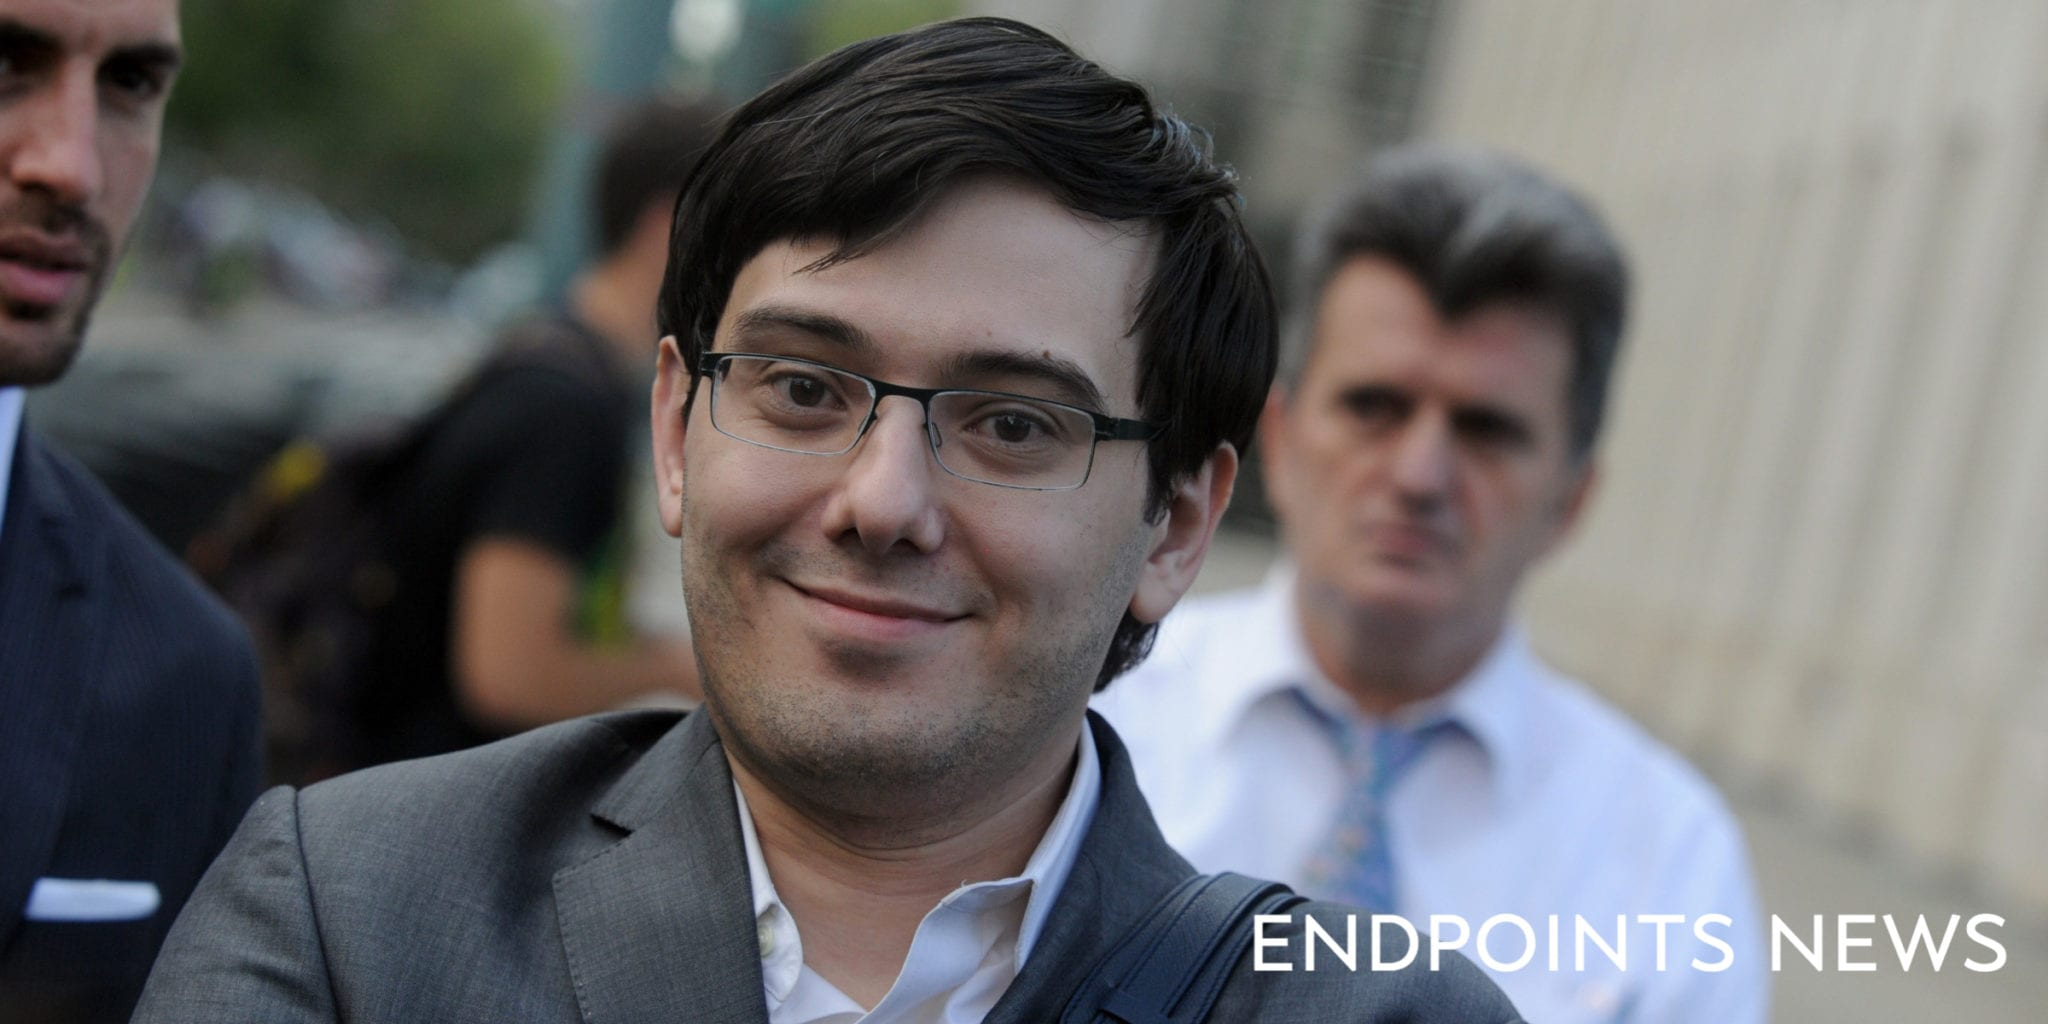 Martin Shkreli gets a transfer to Brooklyn federal prison in wake of his latest rule-breaking escapades behind bars